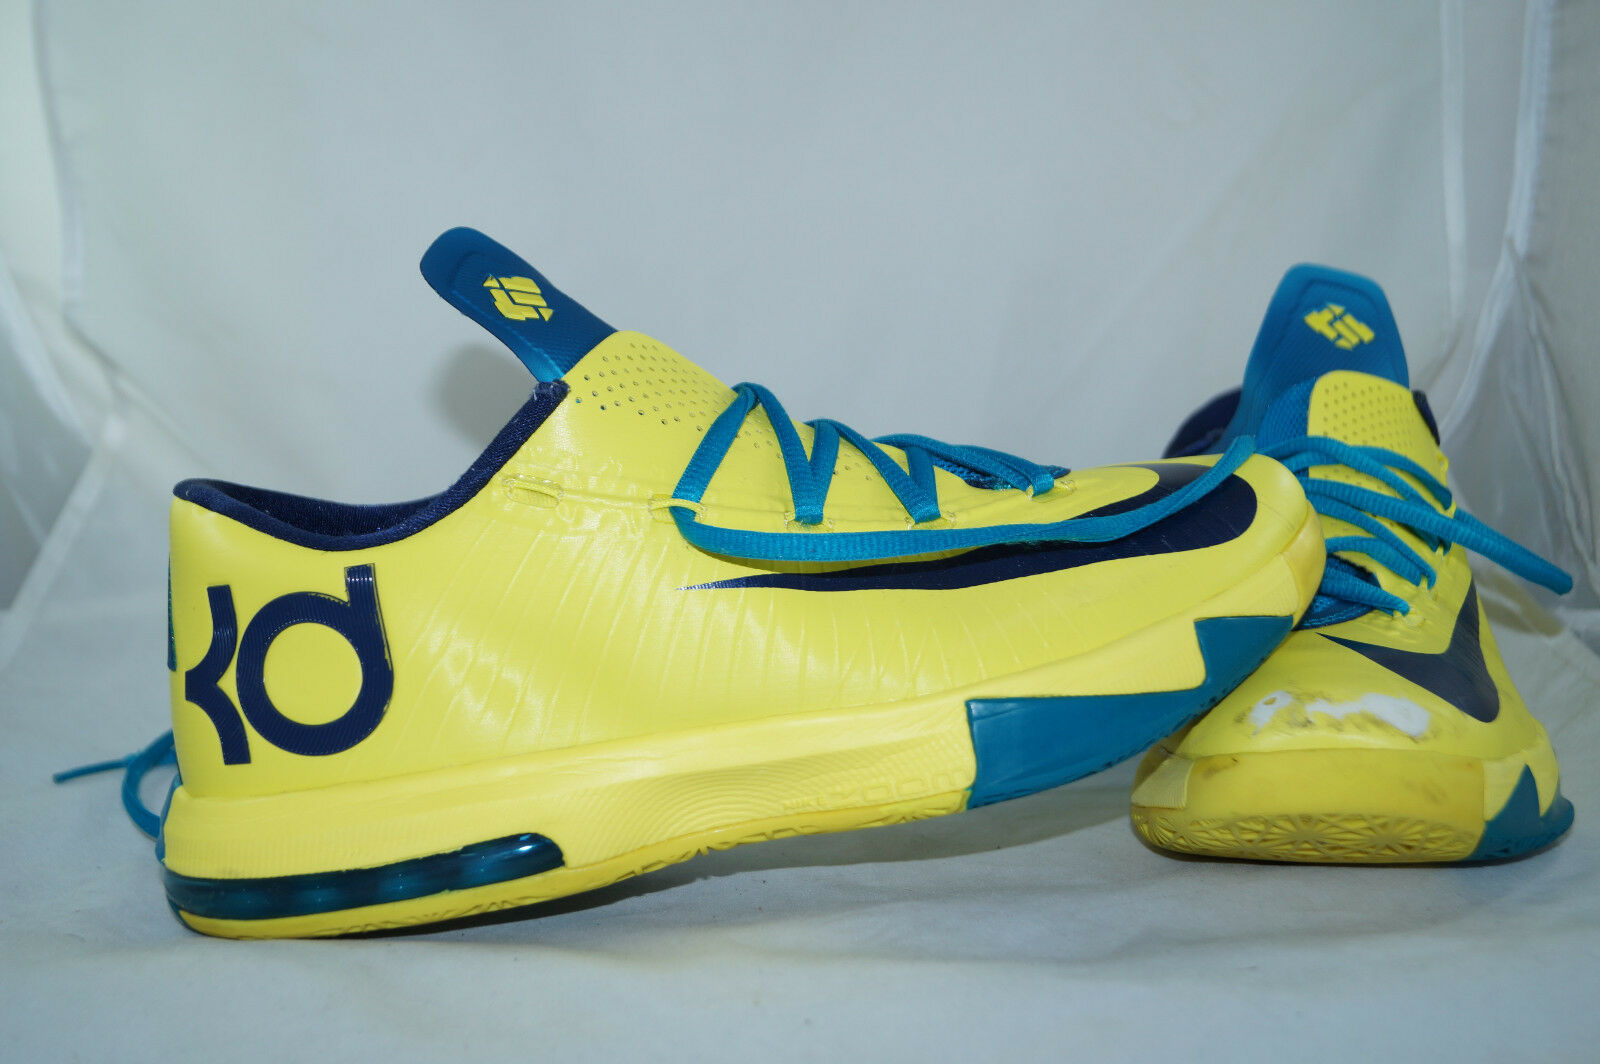 Nike Air Zoom KD VI Durant  Sonic Gelb Gr  42 - 41,5  Basketball Low Tops